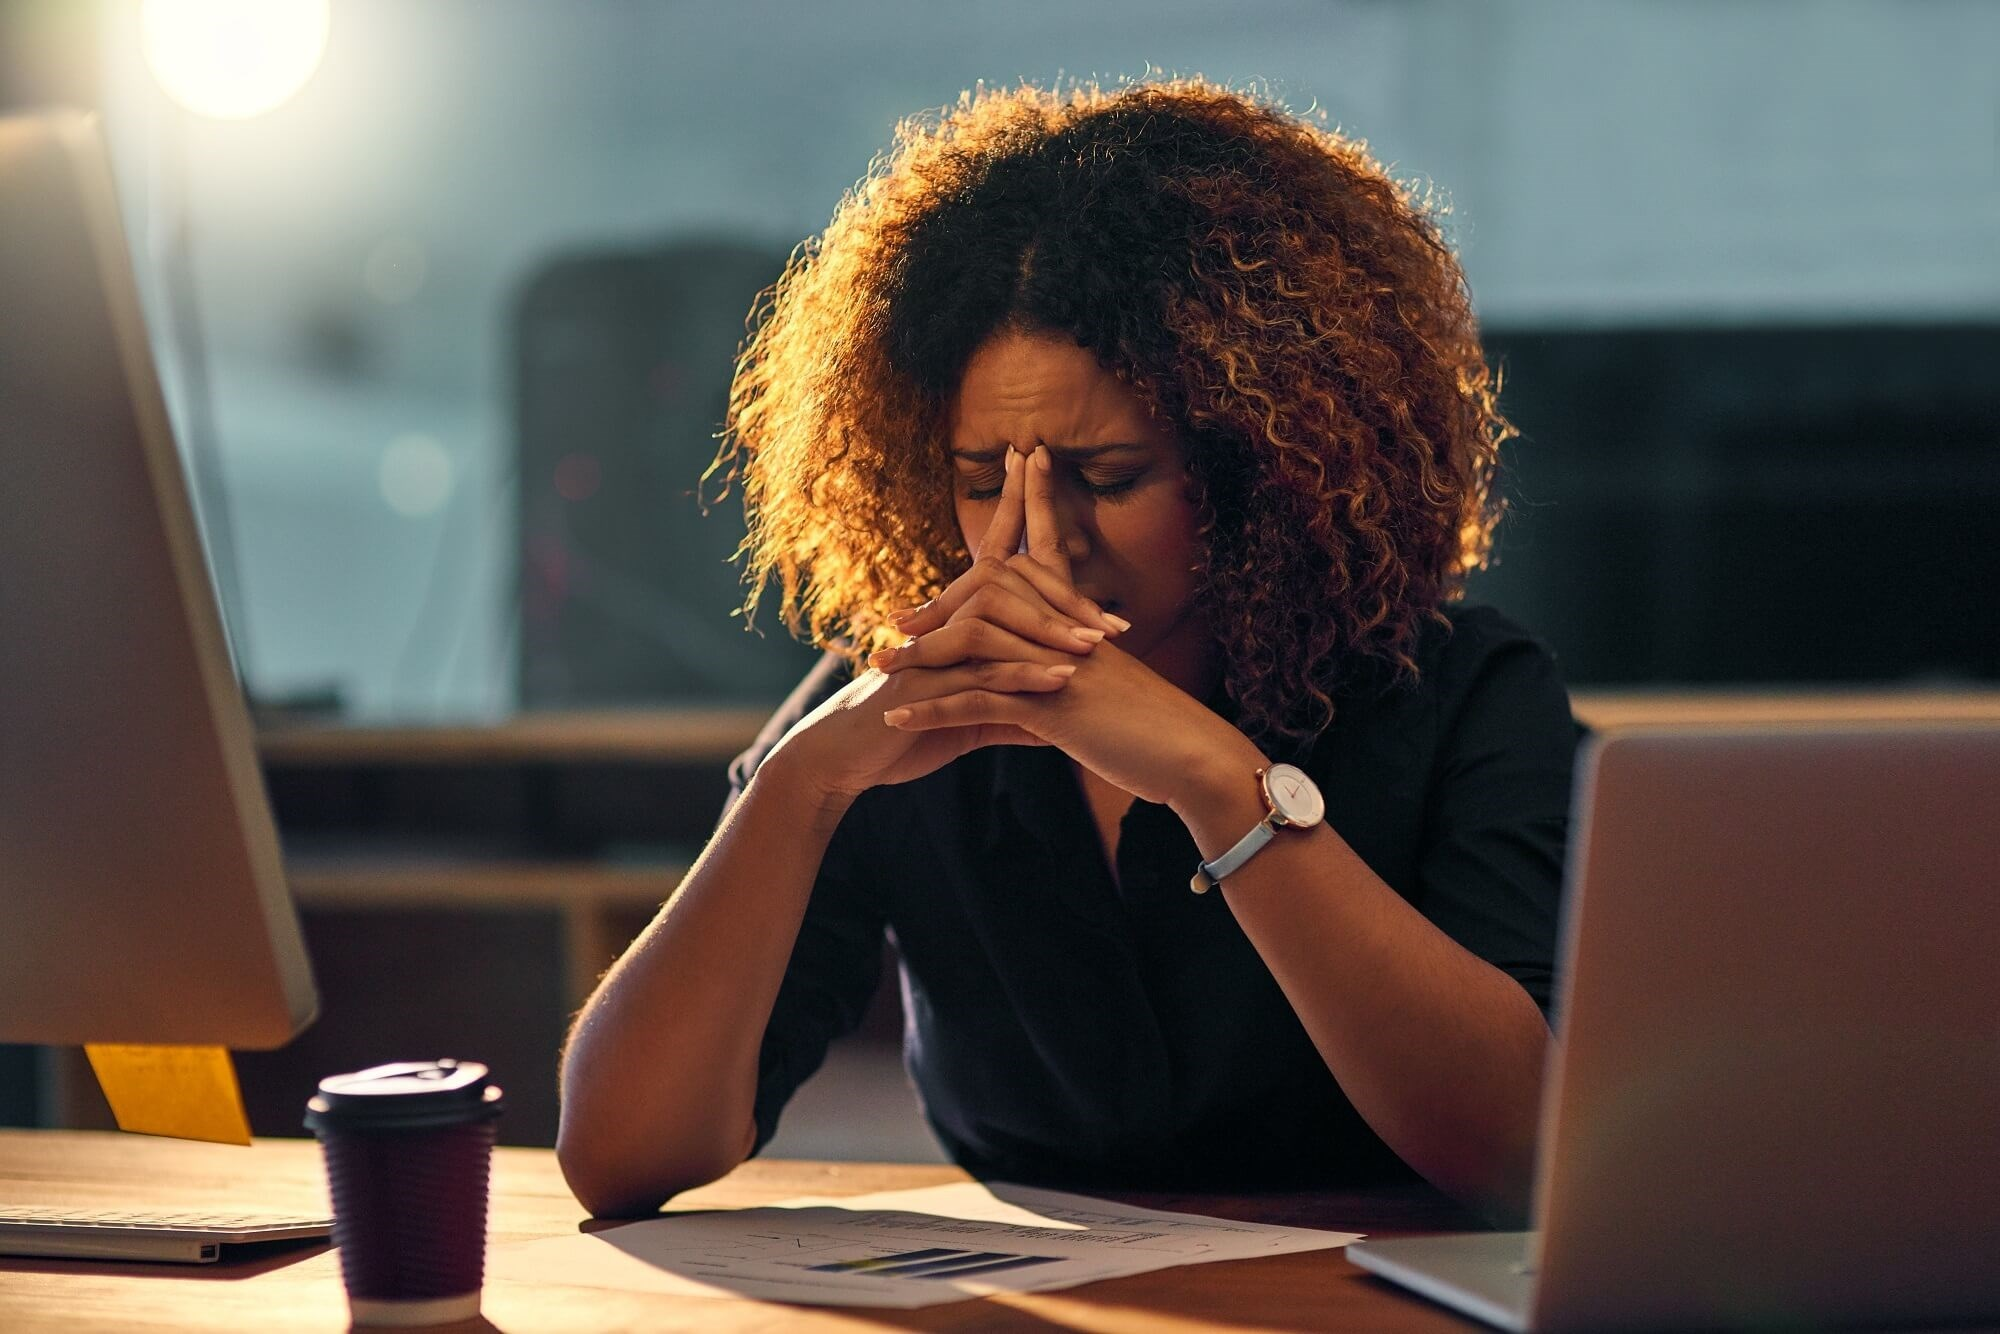 Female Neurologists Have Higher Job Burnout Than Male Neurologists